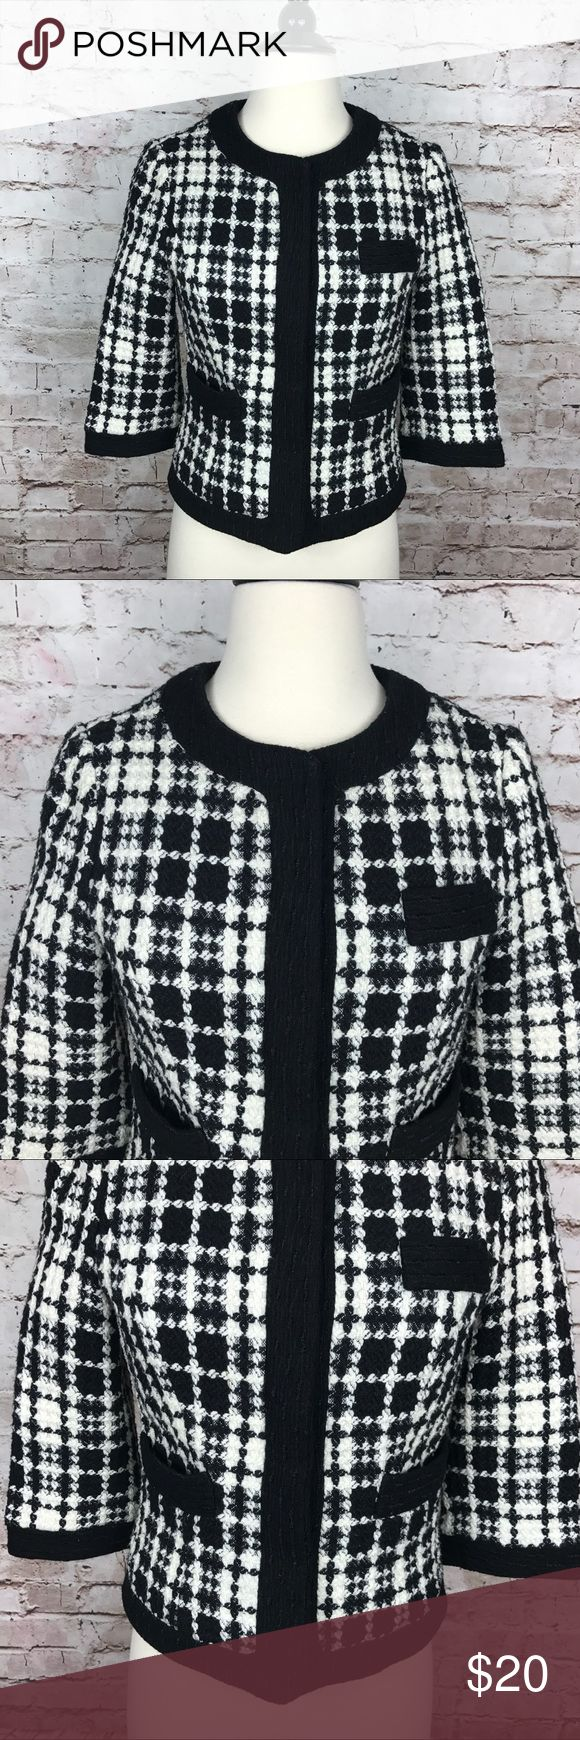 """Bloomingdale's Aqua Wool Blend Blazer S Bloomingdale's Aqua Women's Black and White Wool Blend 3/4 Sleeve Blazer Small S  80% Polyester, 20% wool Measurements :  Armpit to armpit: 16""""  Sleeve: 16""""  Shoulder to bottom: 20""""  Check out my other items! Aqua Jackets & Coats Blazers"""